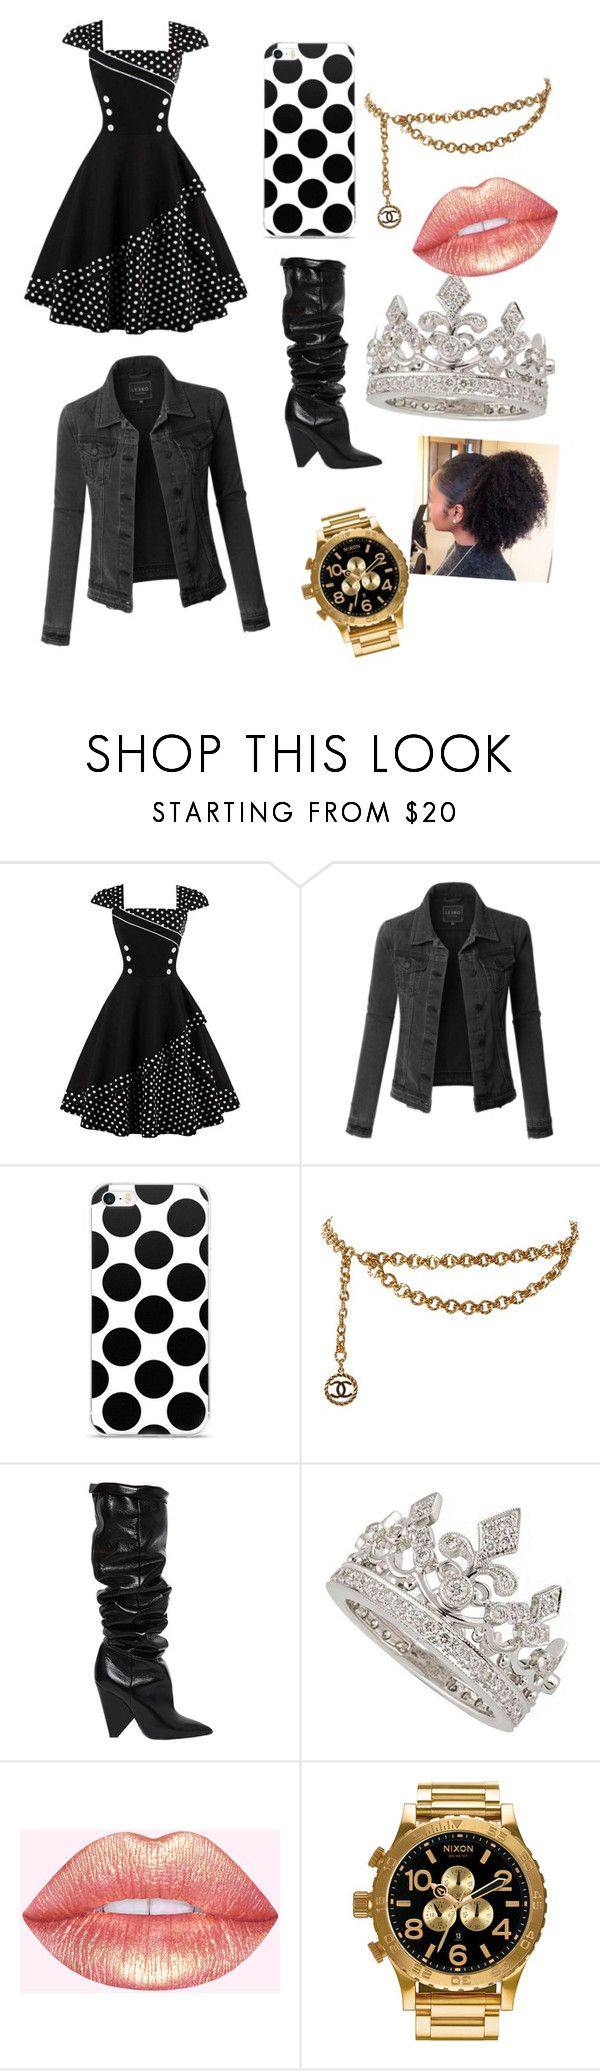 """""""gold and black is a real player"""" by keyasiasobeautiful ❤ liked on Polyvore featuring LE3NO, Chanel, Yves Saint Laurent, Garrard and Nixon"""